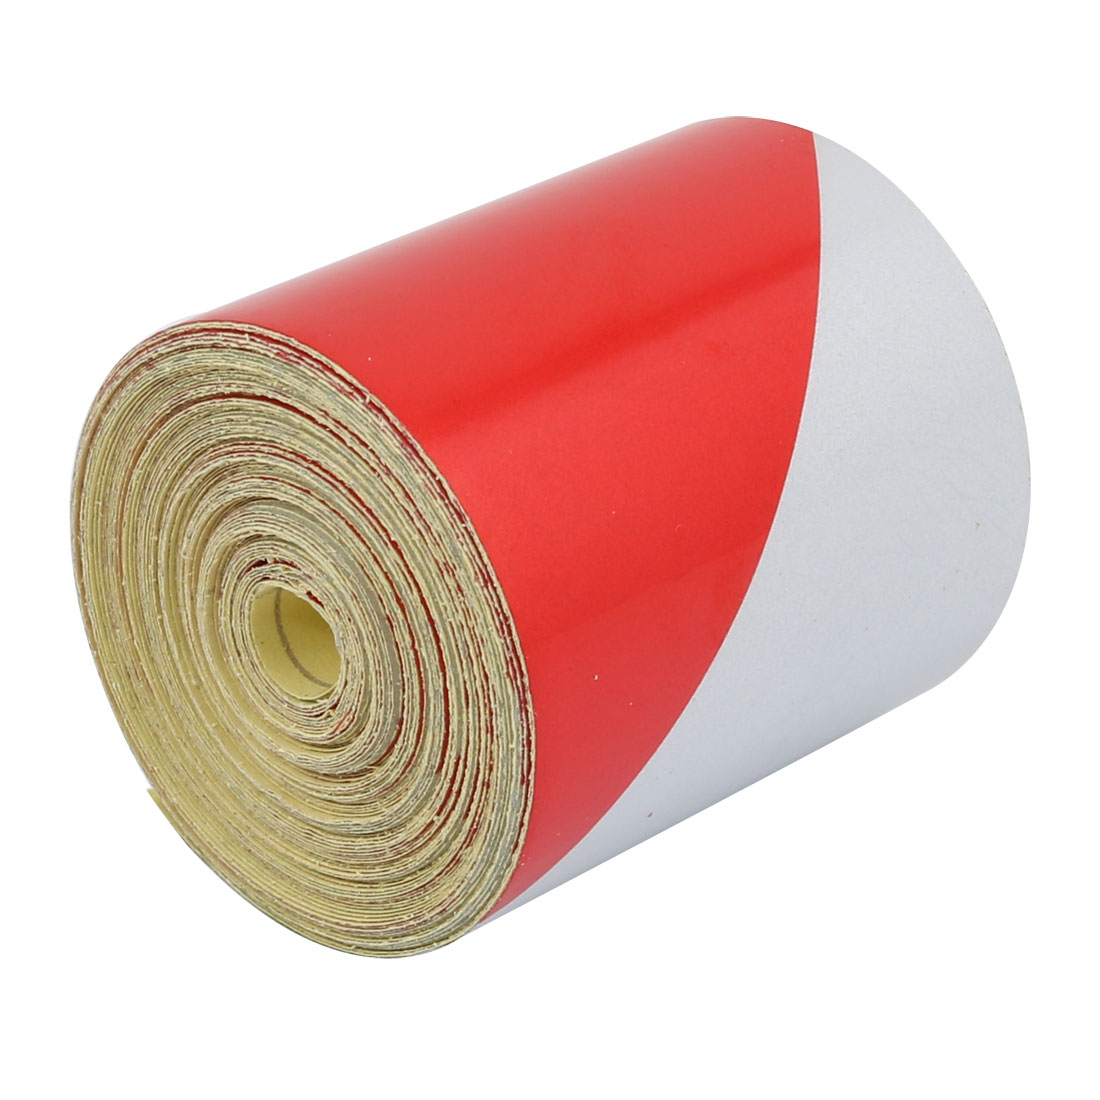 5cm Wide 7 Meters Long Single Sided Adhesive Reflective Warning Tape Red White